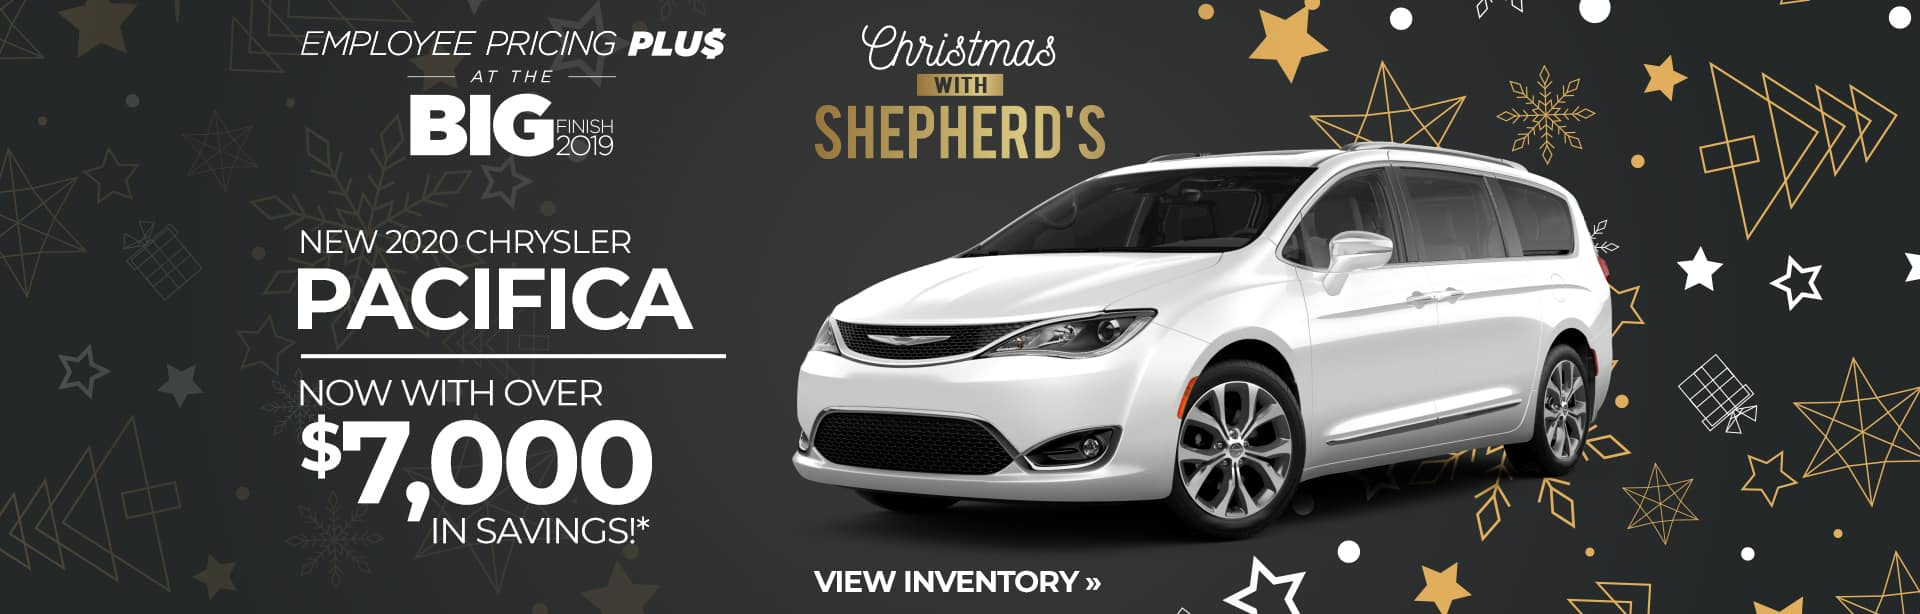 Rebate Special on a New Chrysler Pacifica in Auburn, Indiana